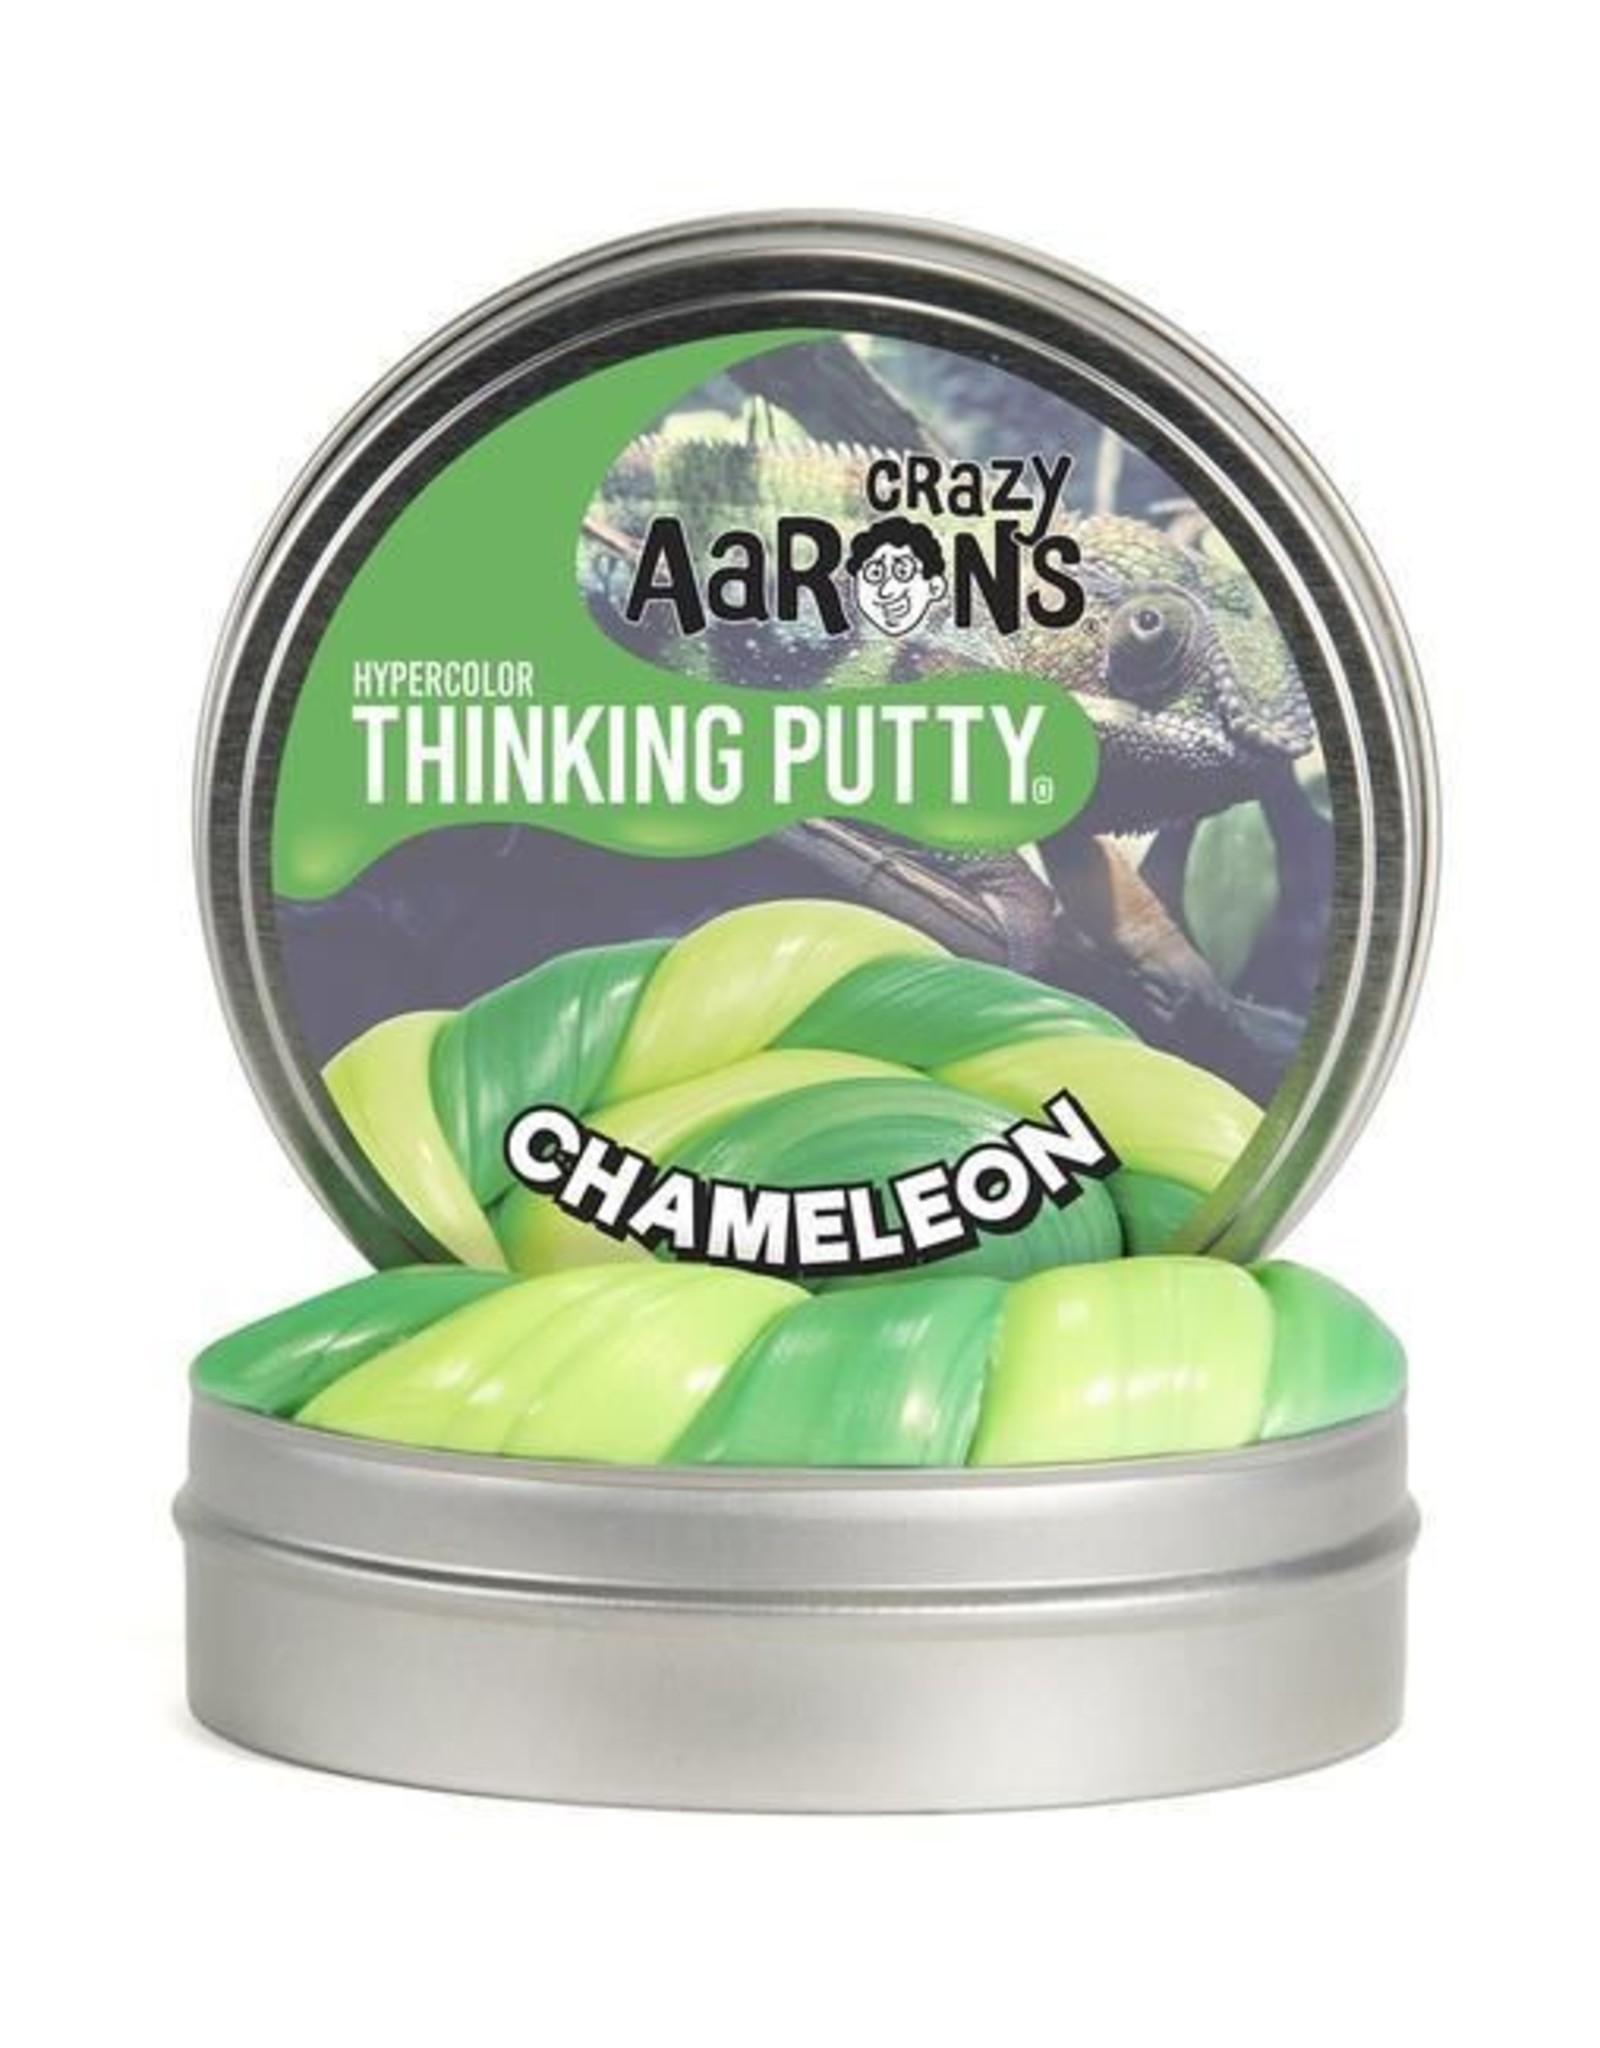 Crazy Aaron's Crazy Aaron's Chameleon Thinking Putty